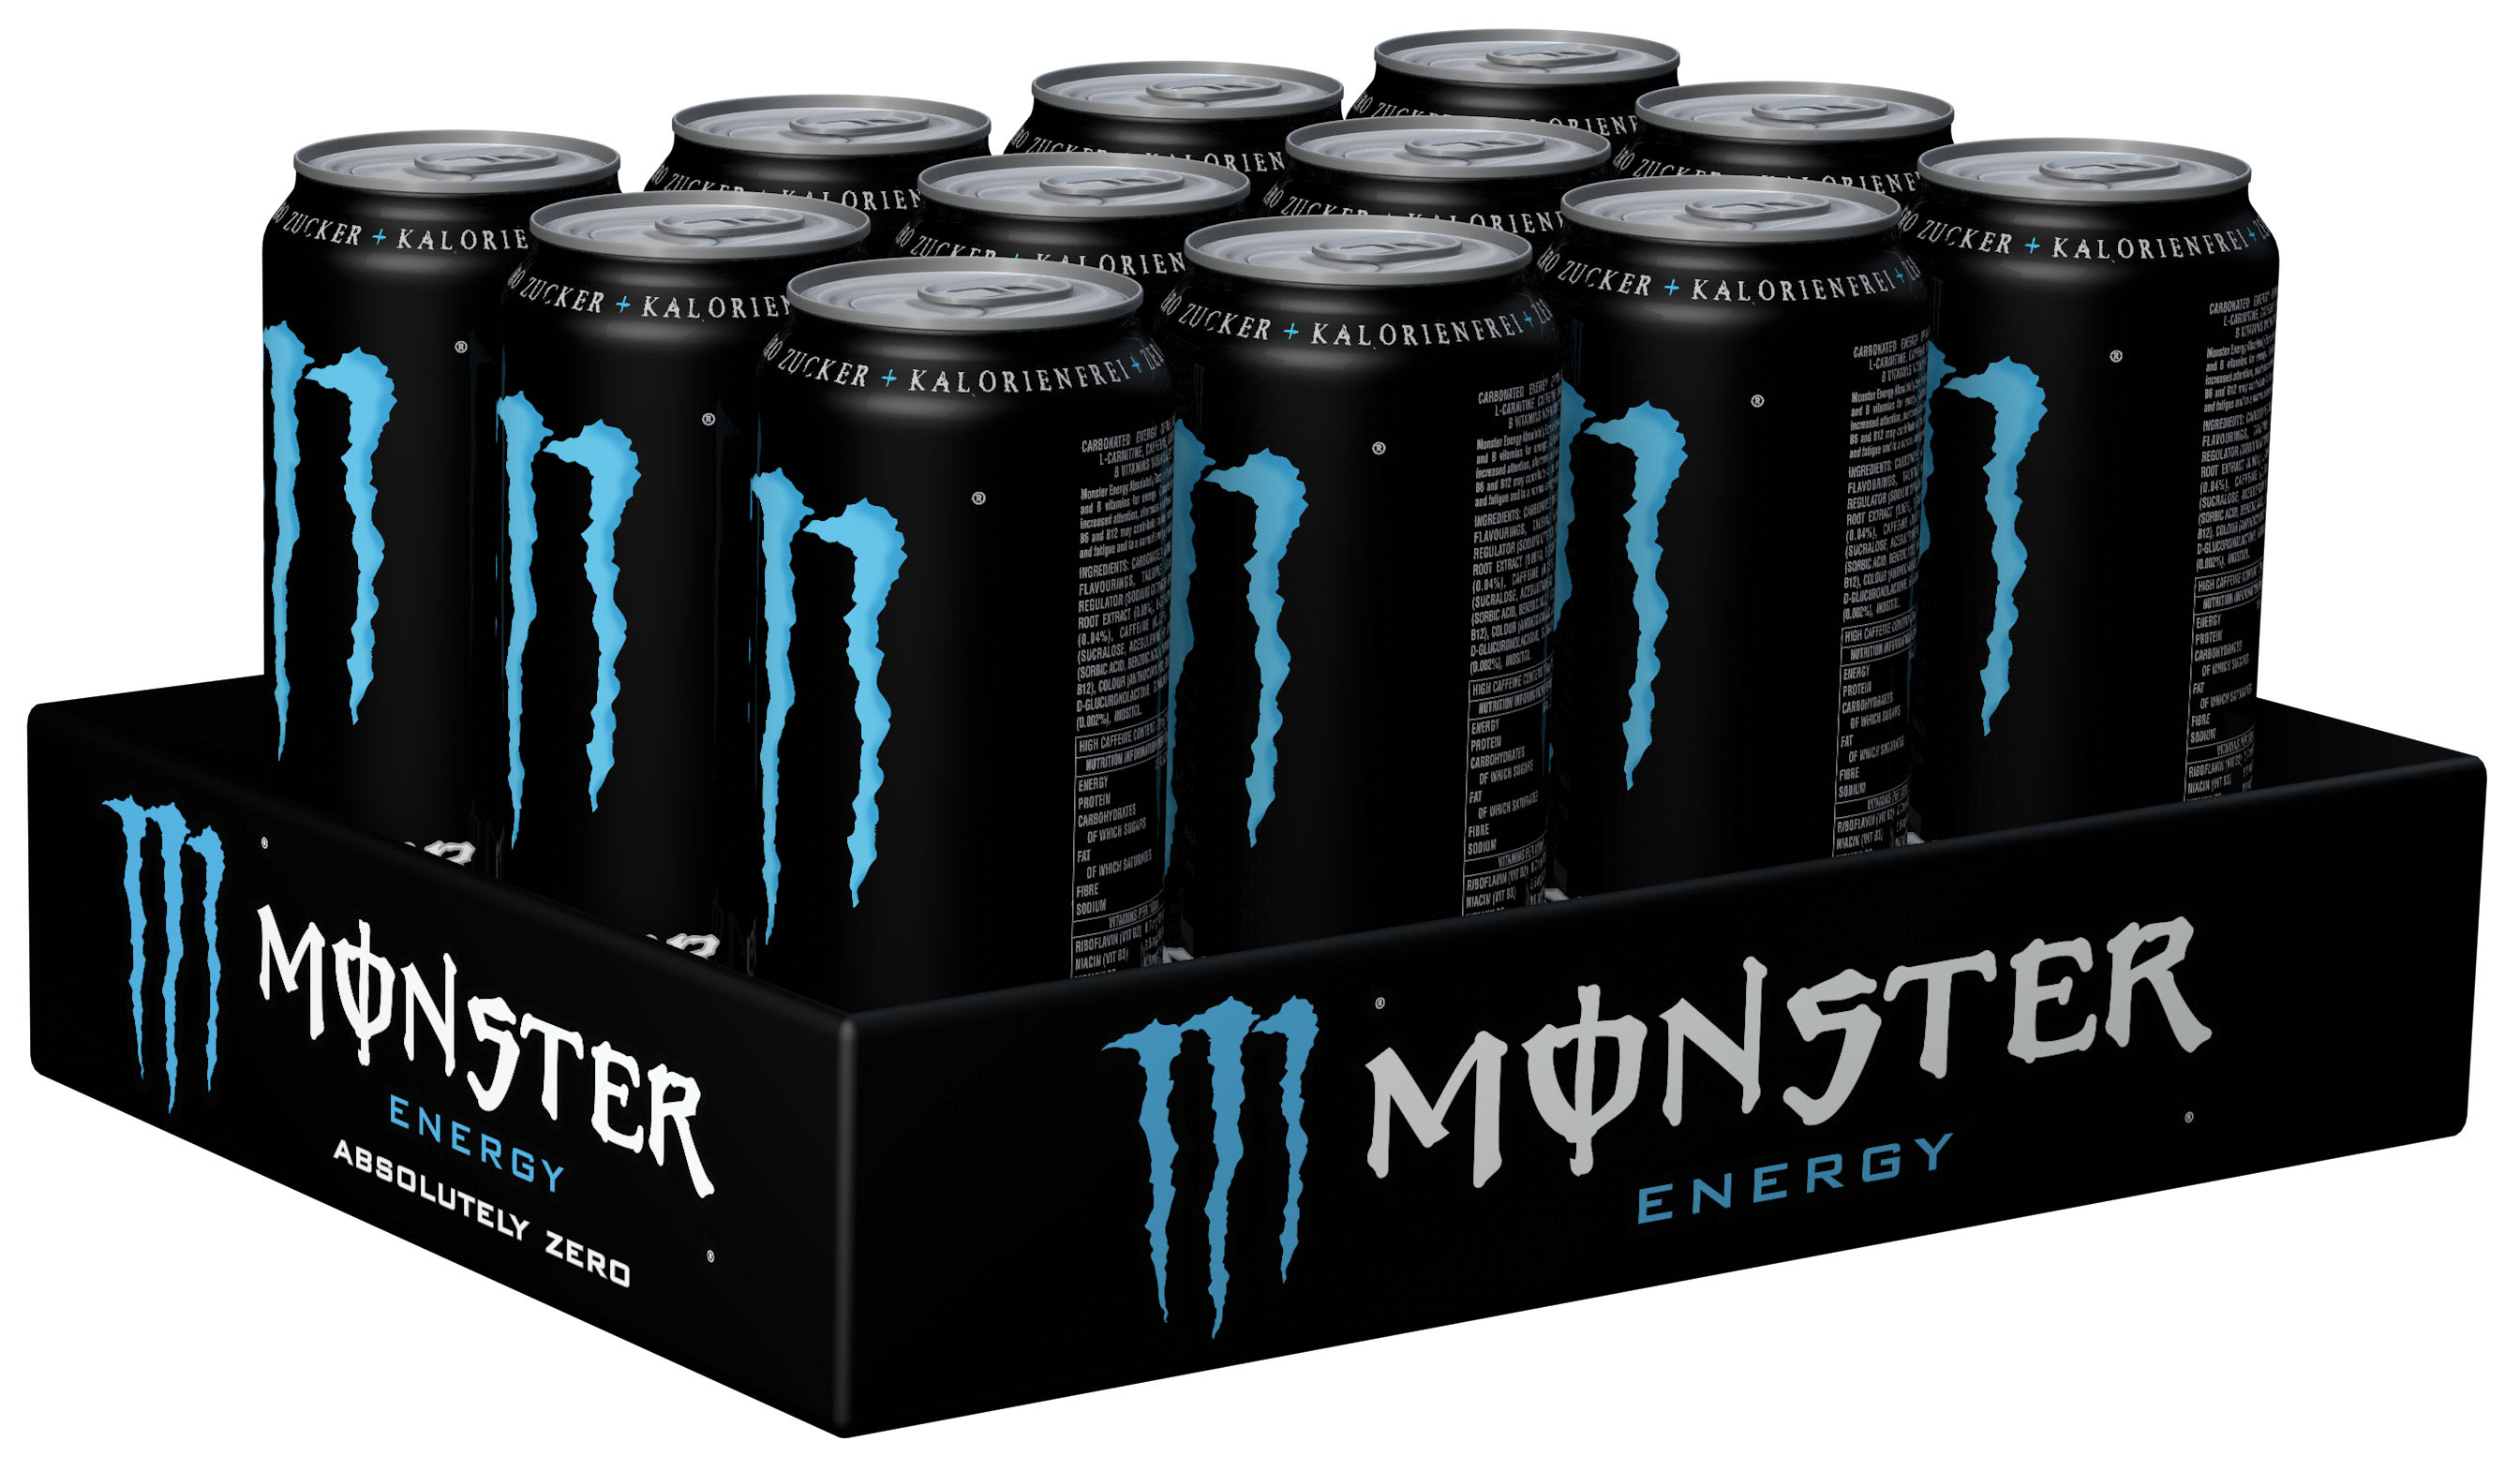 Monster Energy Absolutely Zero Karton 12 x 0,5 l Dose Einweg